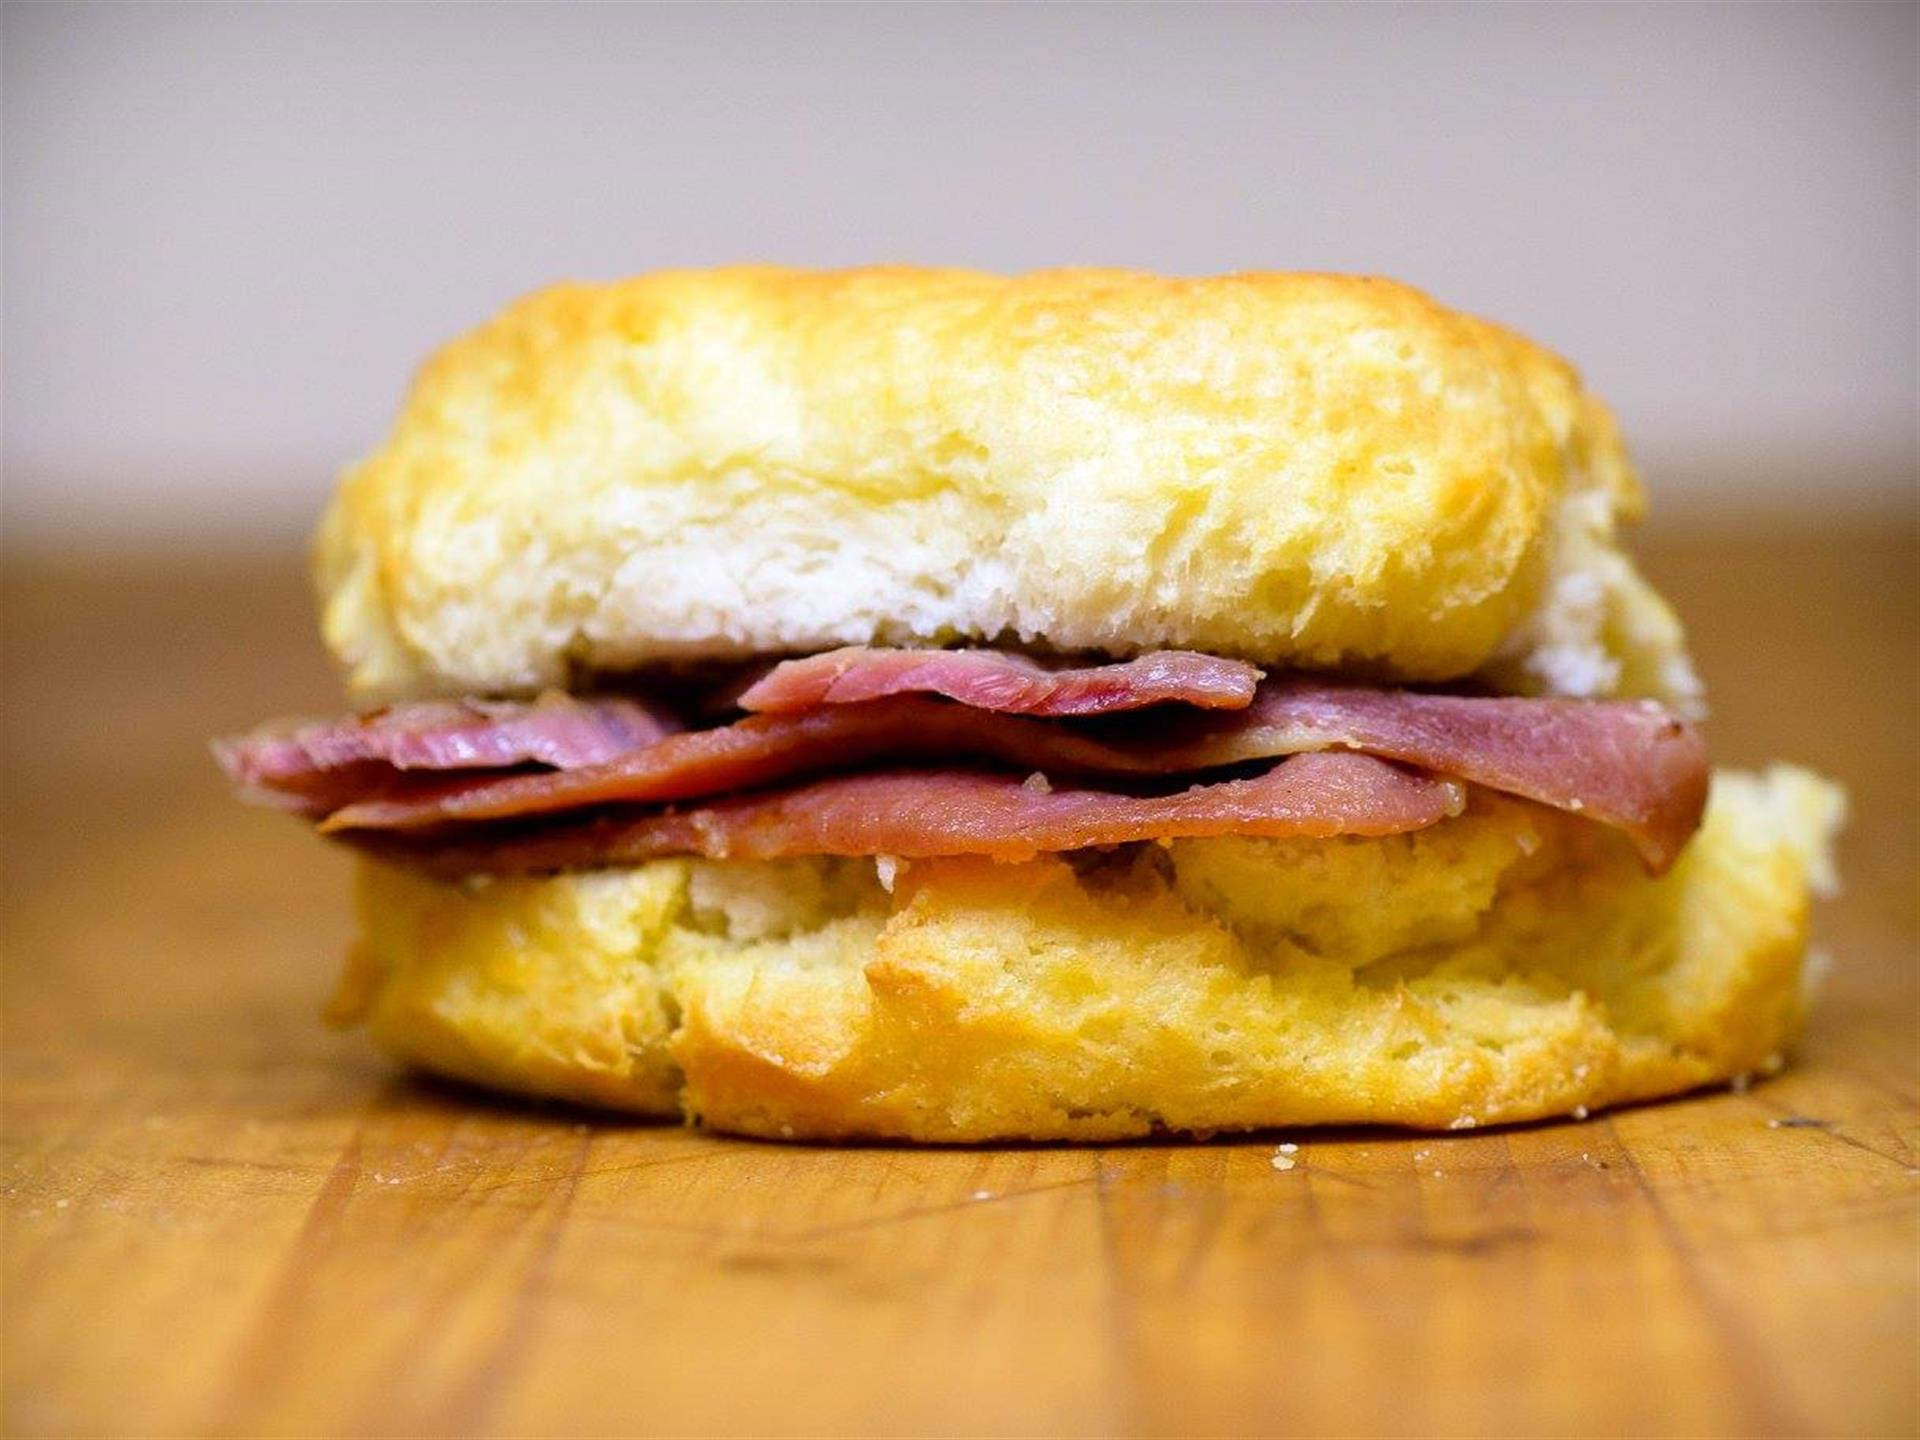 ham on a biscuit